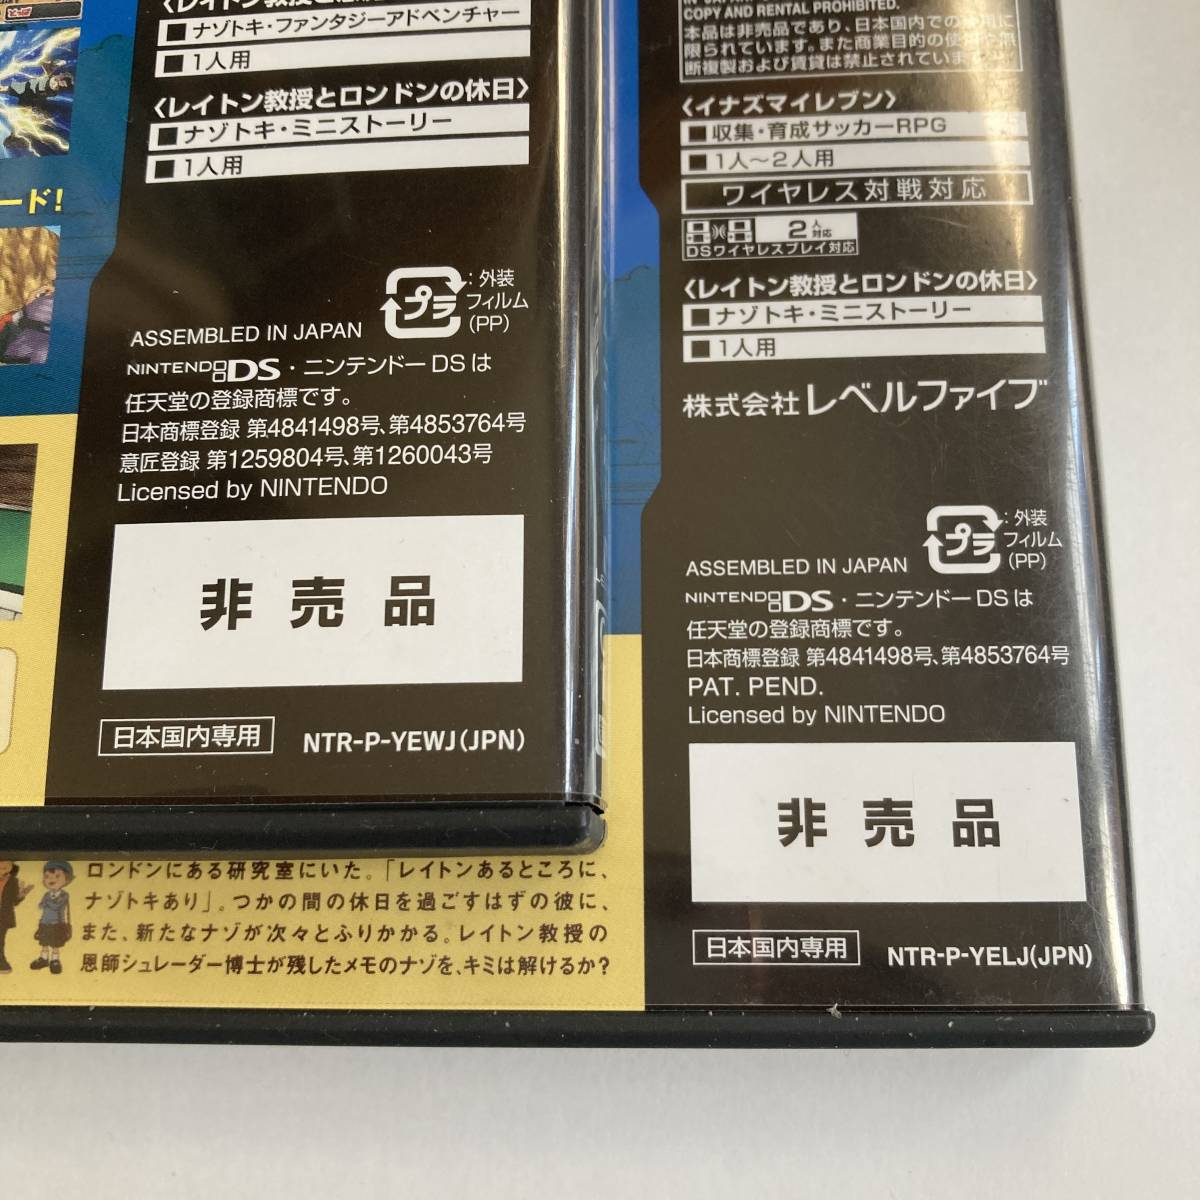 DS用 レベルファイブ プレミアム ゴールド シルバー / Lot 2 Level 5 Five Premium Gold Silver NDS Nintendo DS Japan Not Sold in Stores